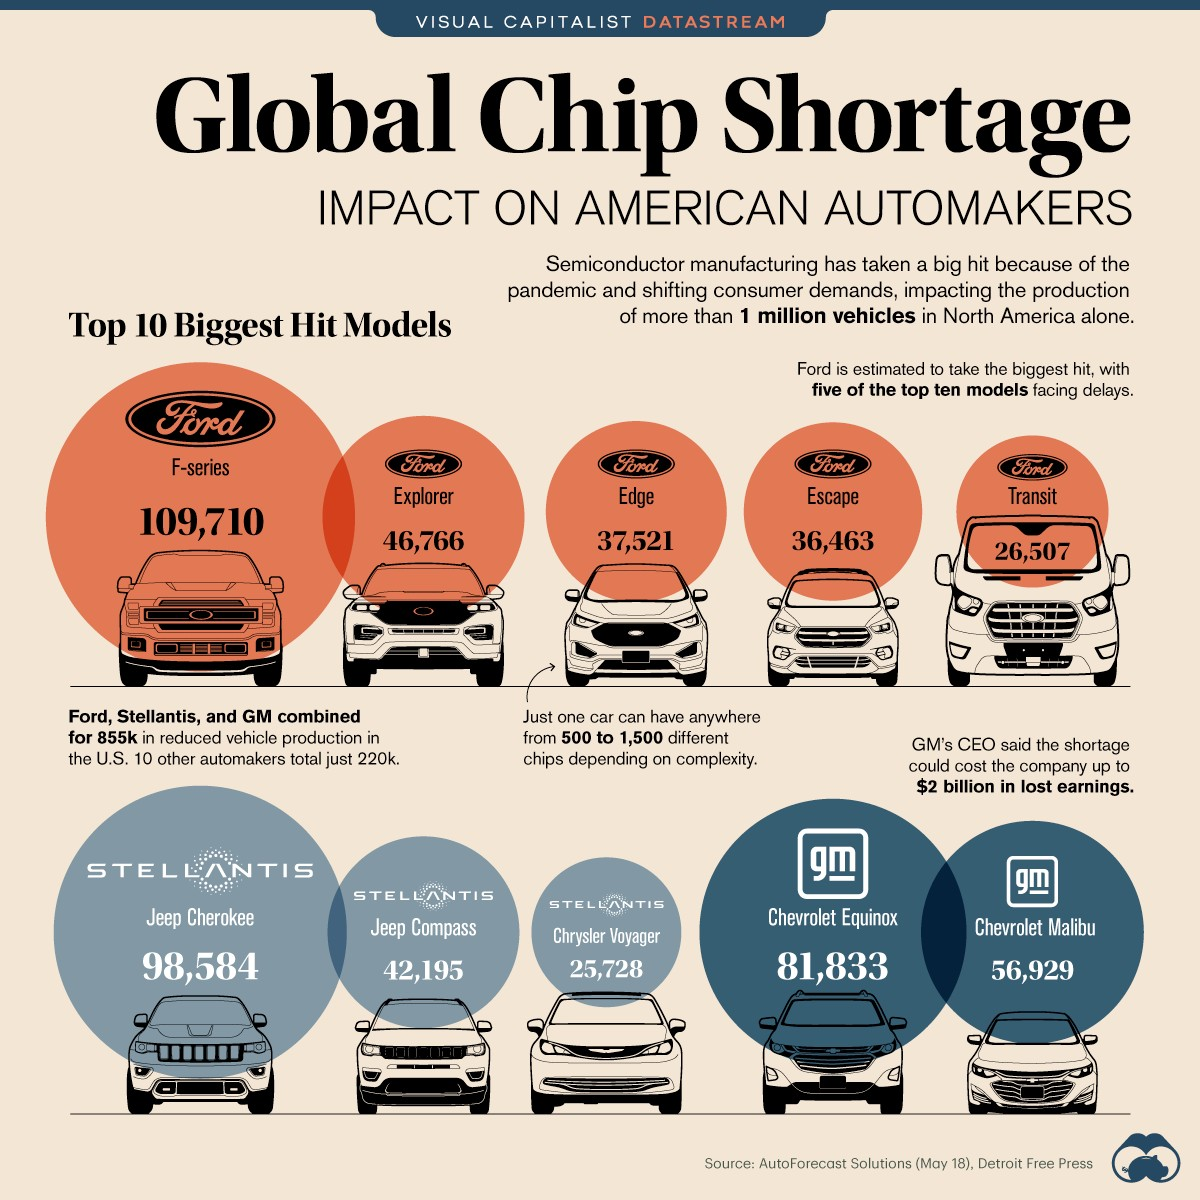 https://www.visualcapitalist.com/global-chip-shortage-impact-on-american-automakers/